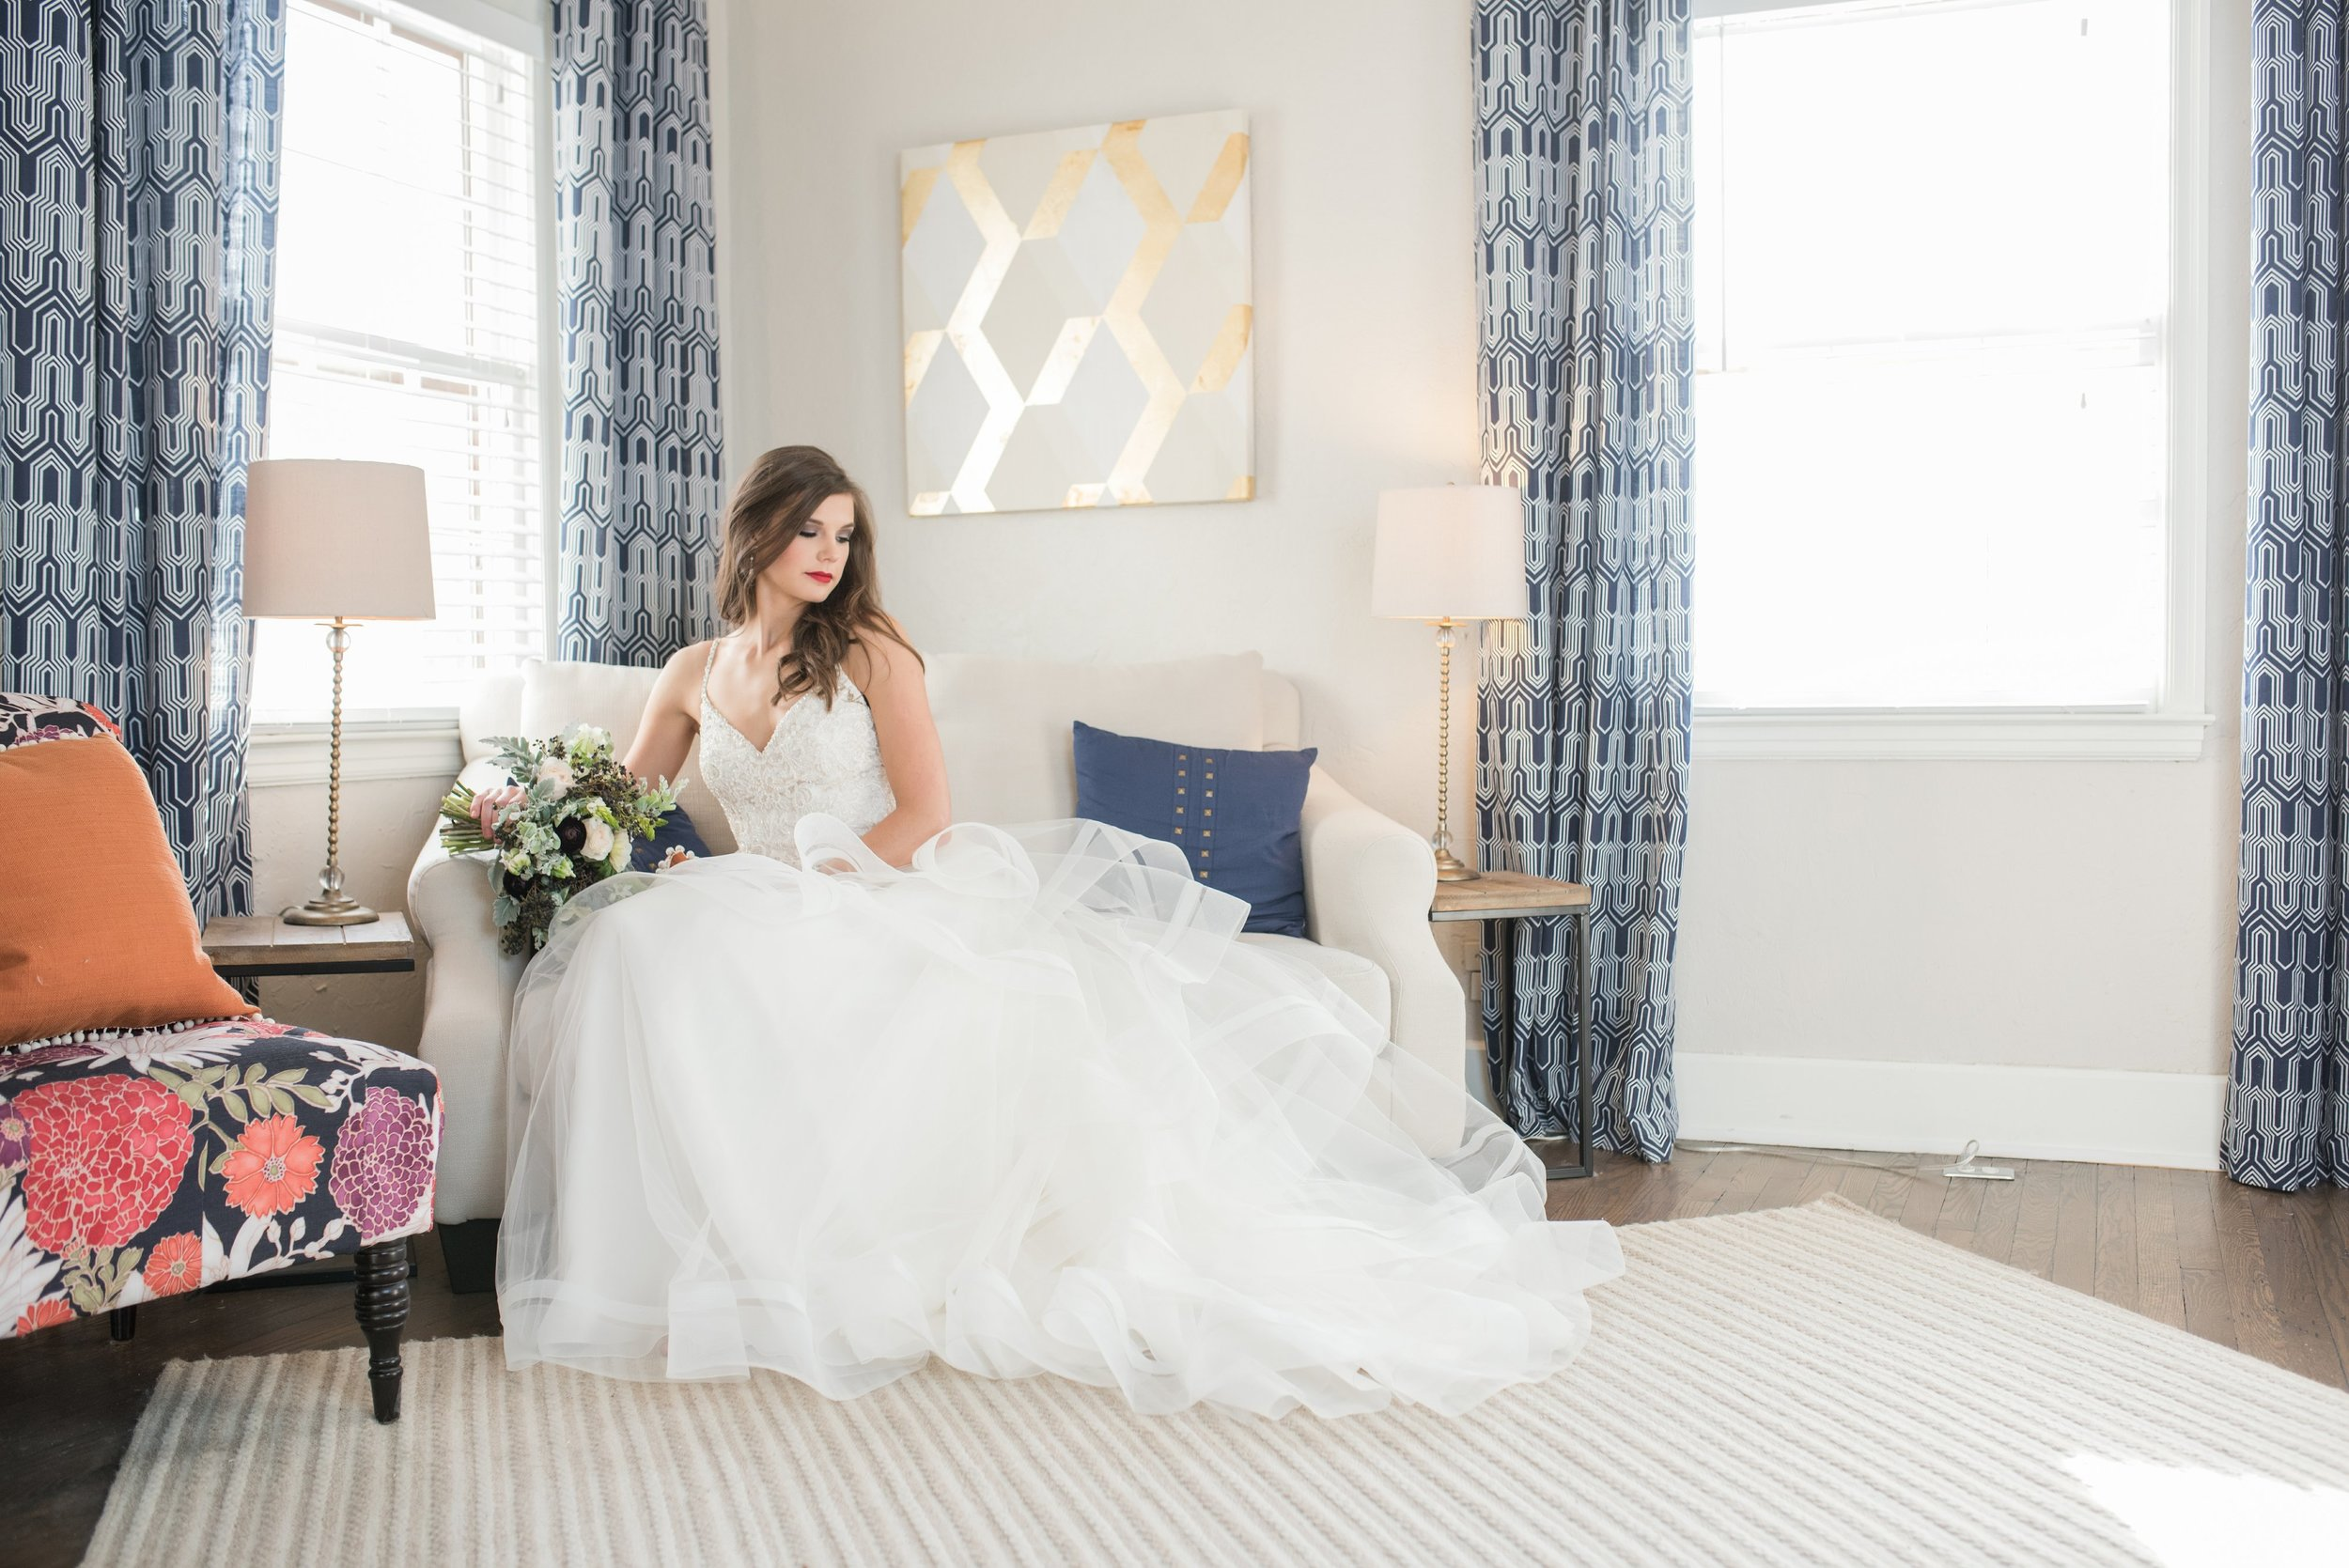 Our private bridal suites offer all the comforts of home while shopping with friends and family!